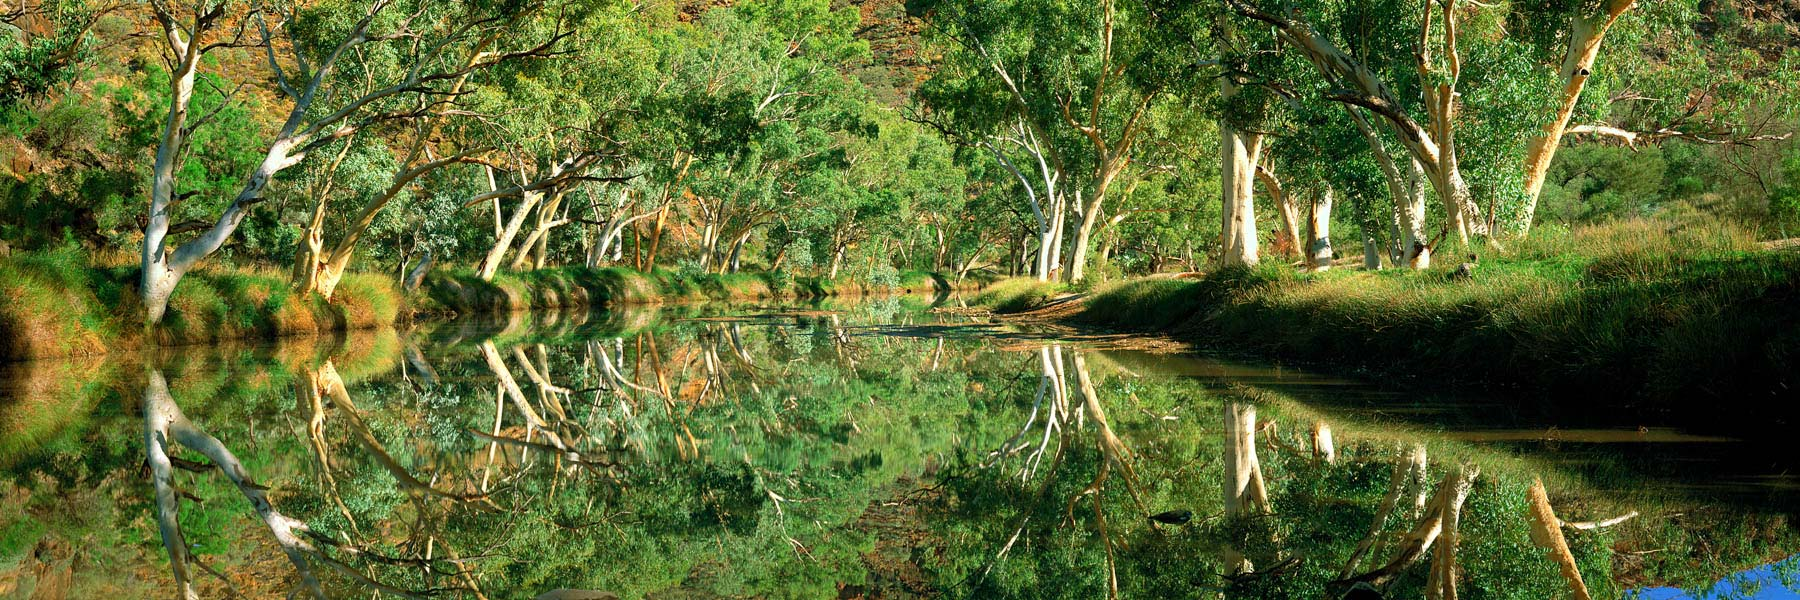 Perfect reflections of river gums lining the banks of Ellery Creek, N, Australia.